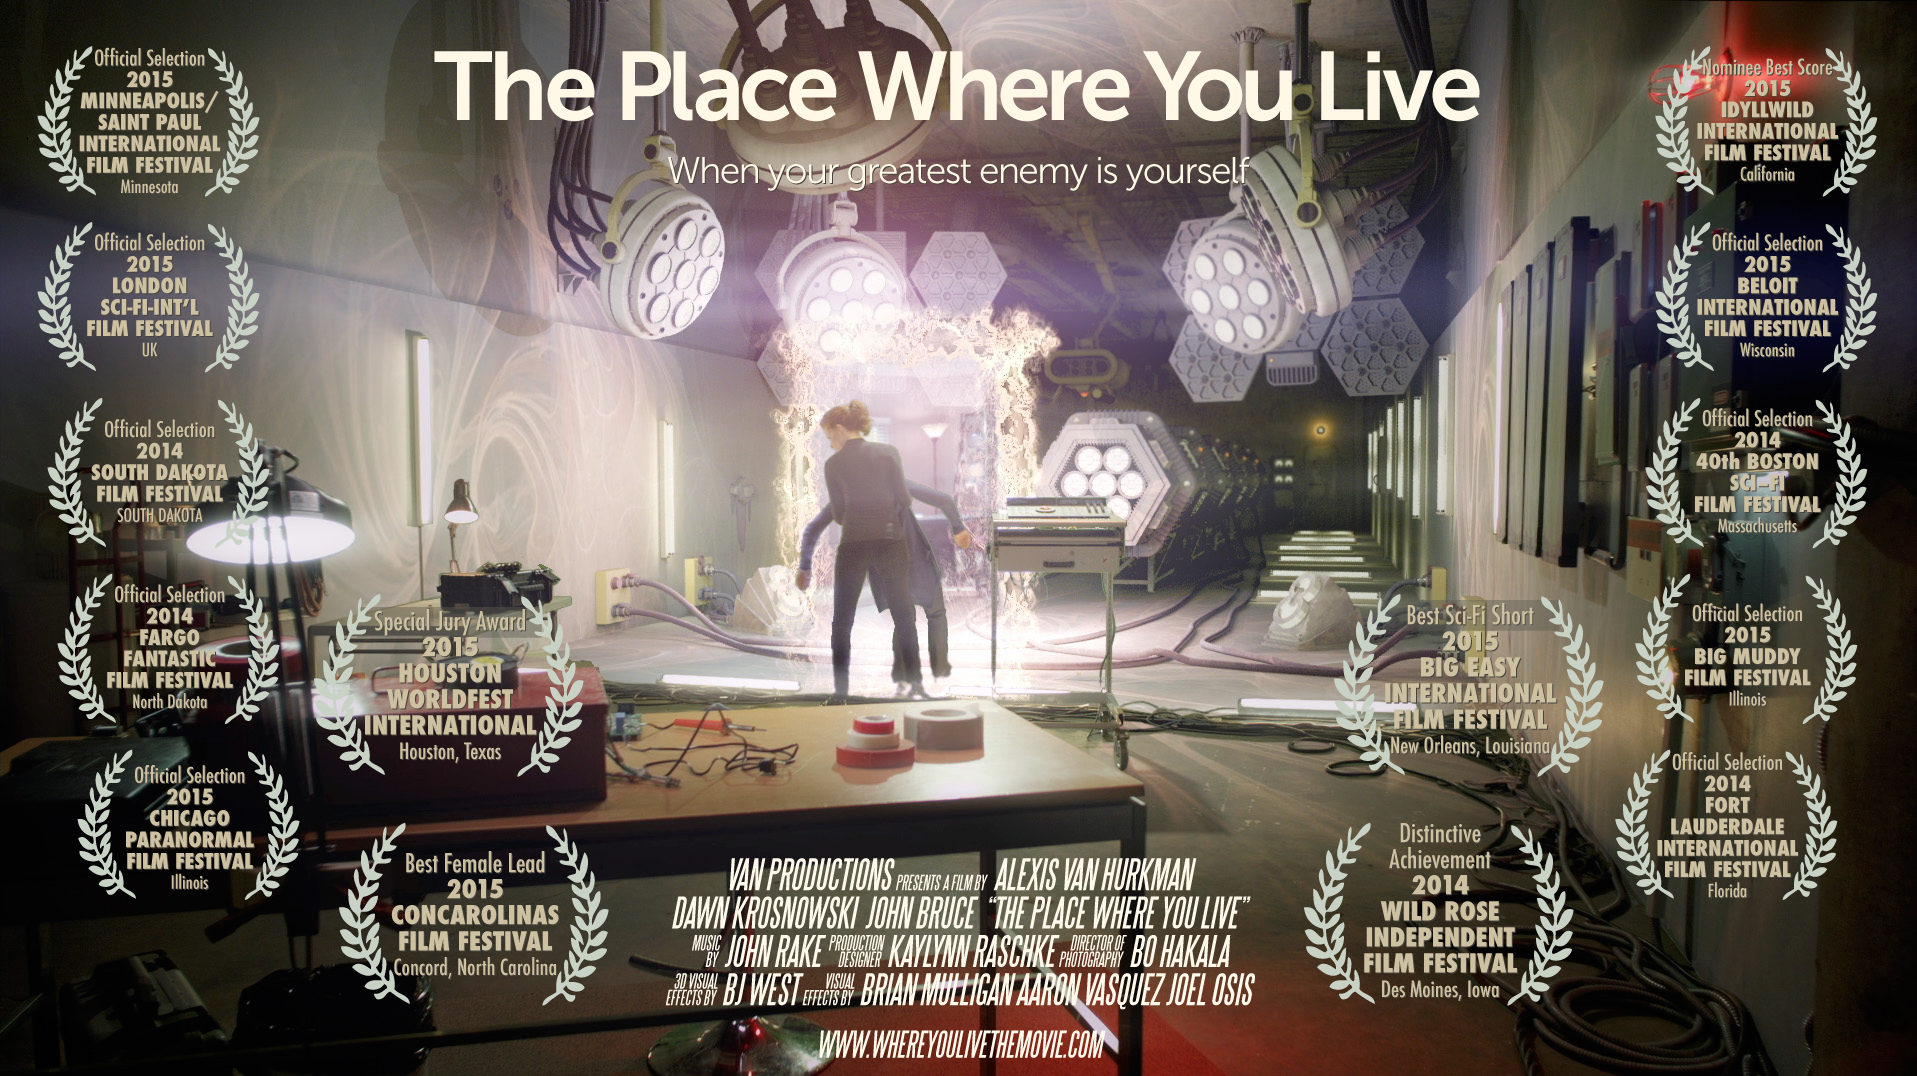 The Place Where You Live Poster